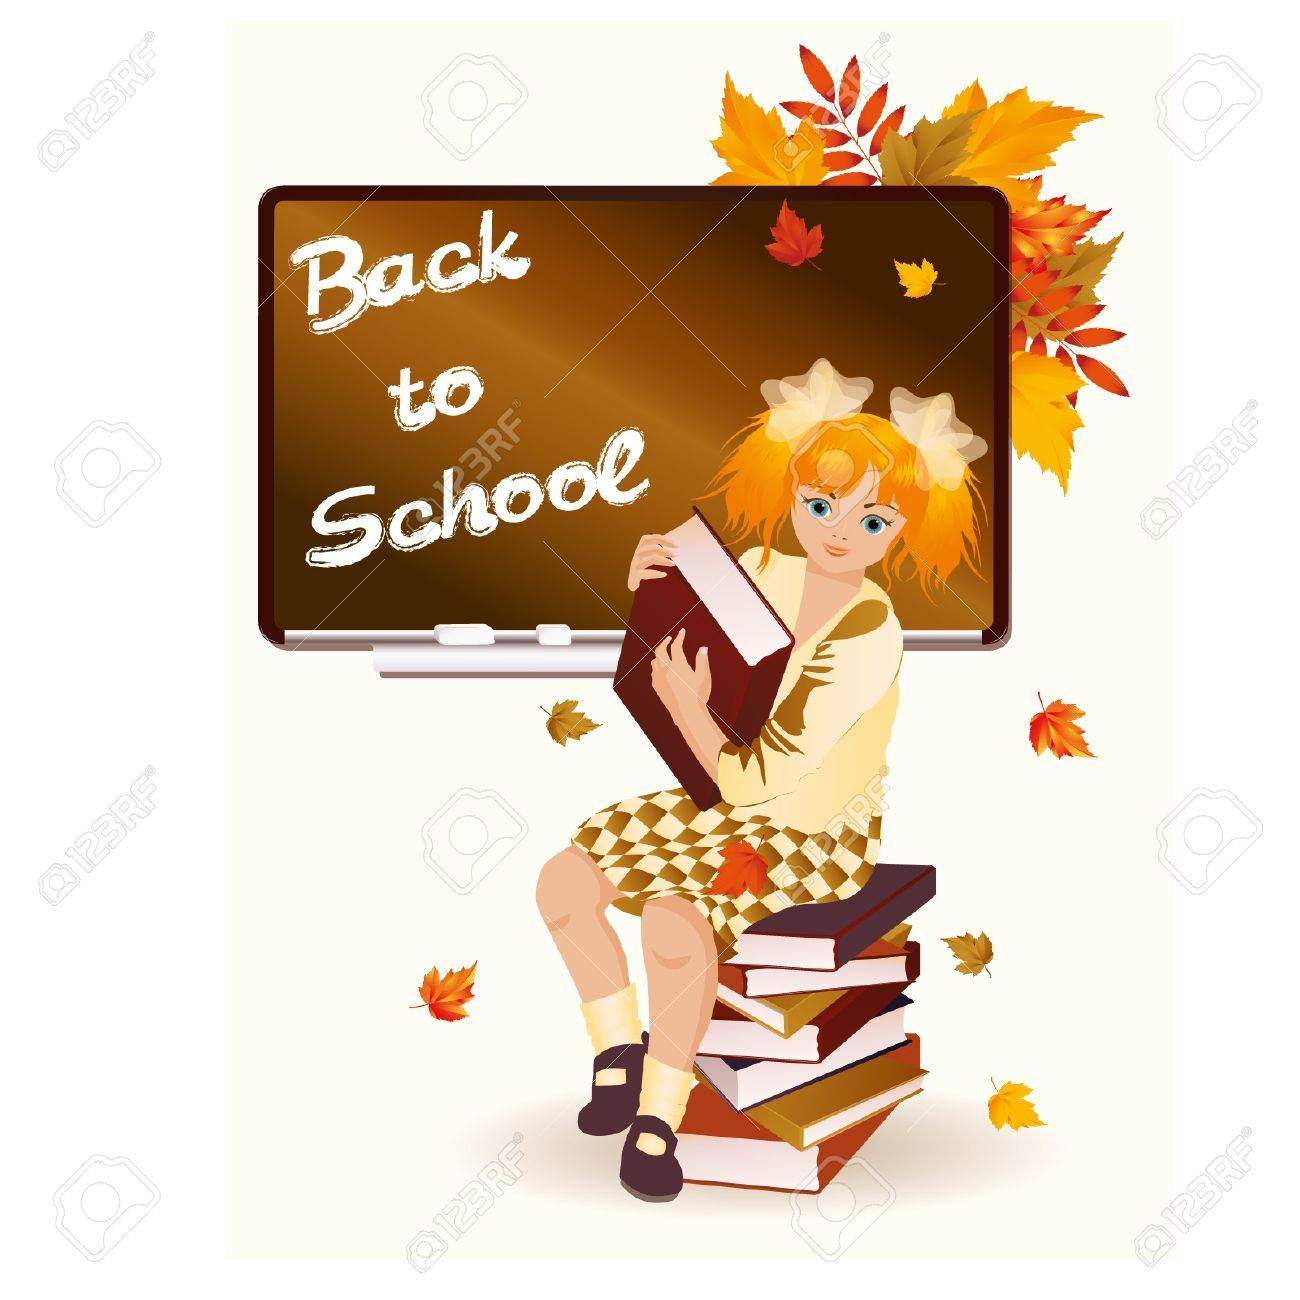 Back to school  Young schoolgirl with books  illustration Stock Vector - 14733385